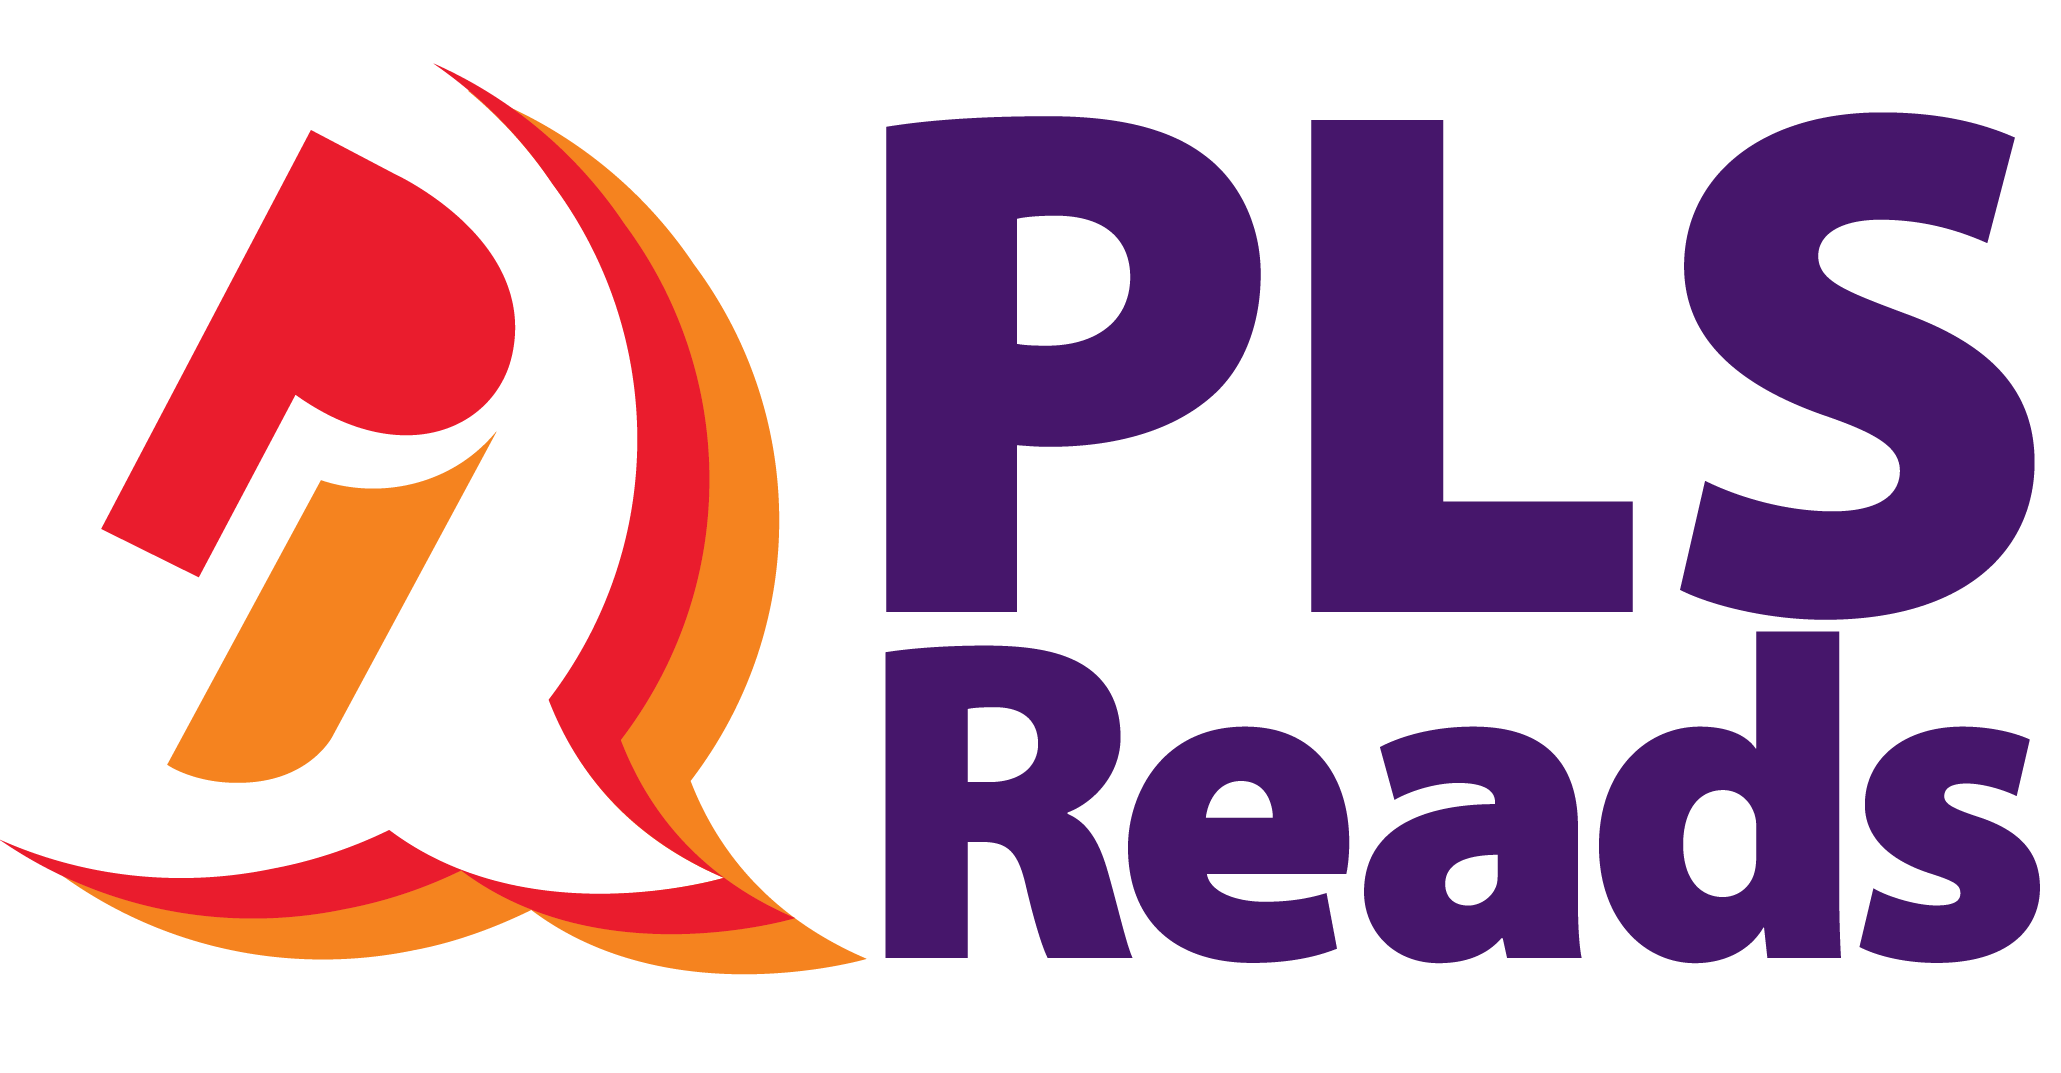 PLS Reads logo